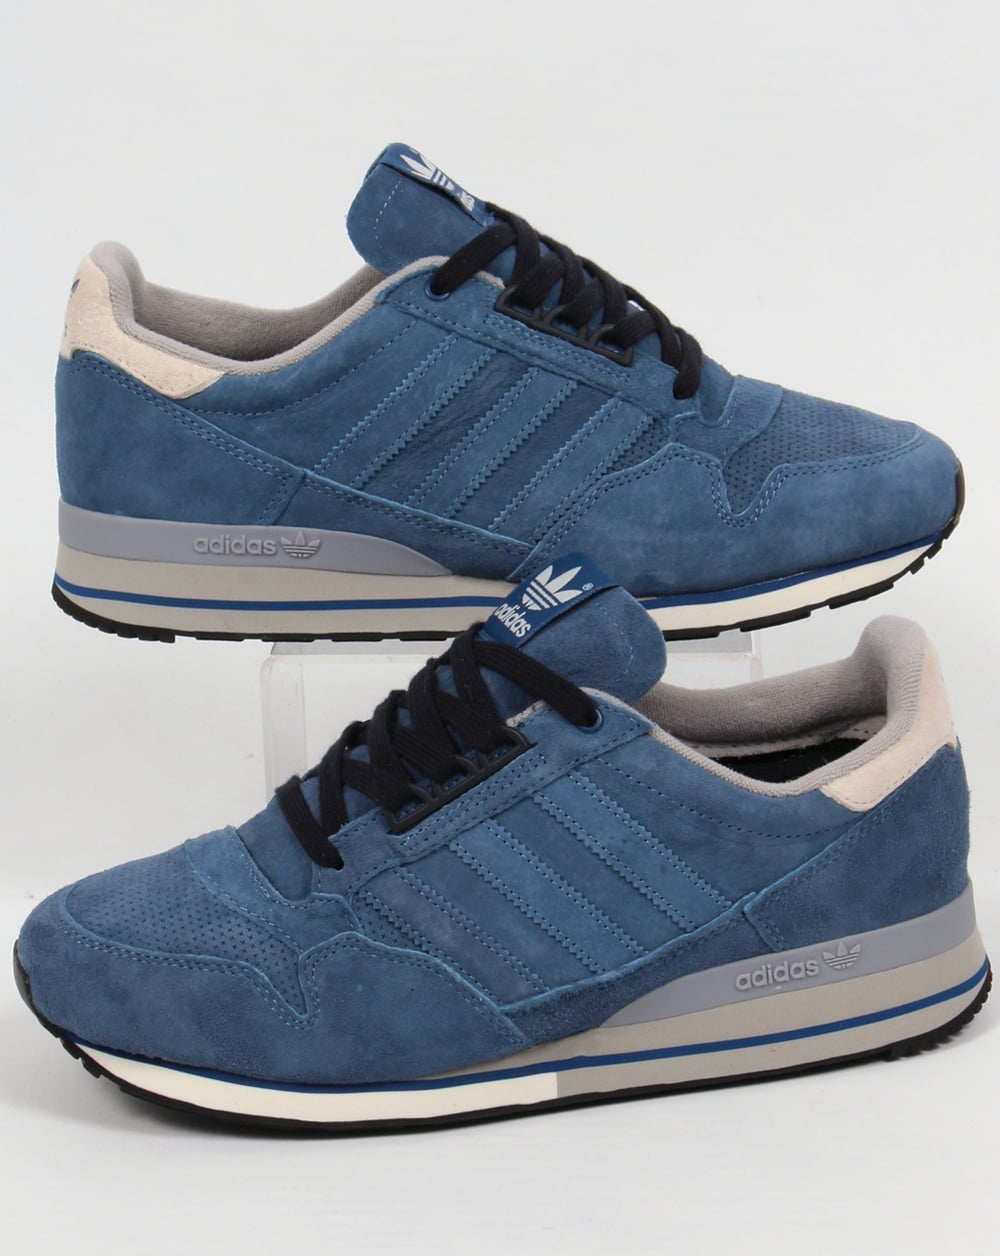 adidas zx 500 og ash blue light onix originals shoes sneakers. Black Bedroom Furniture Sets. Home Design Ideas